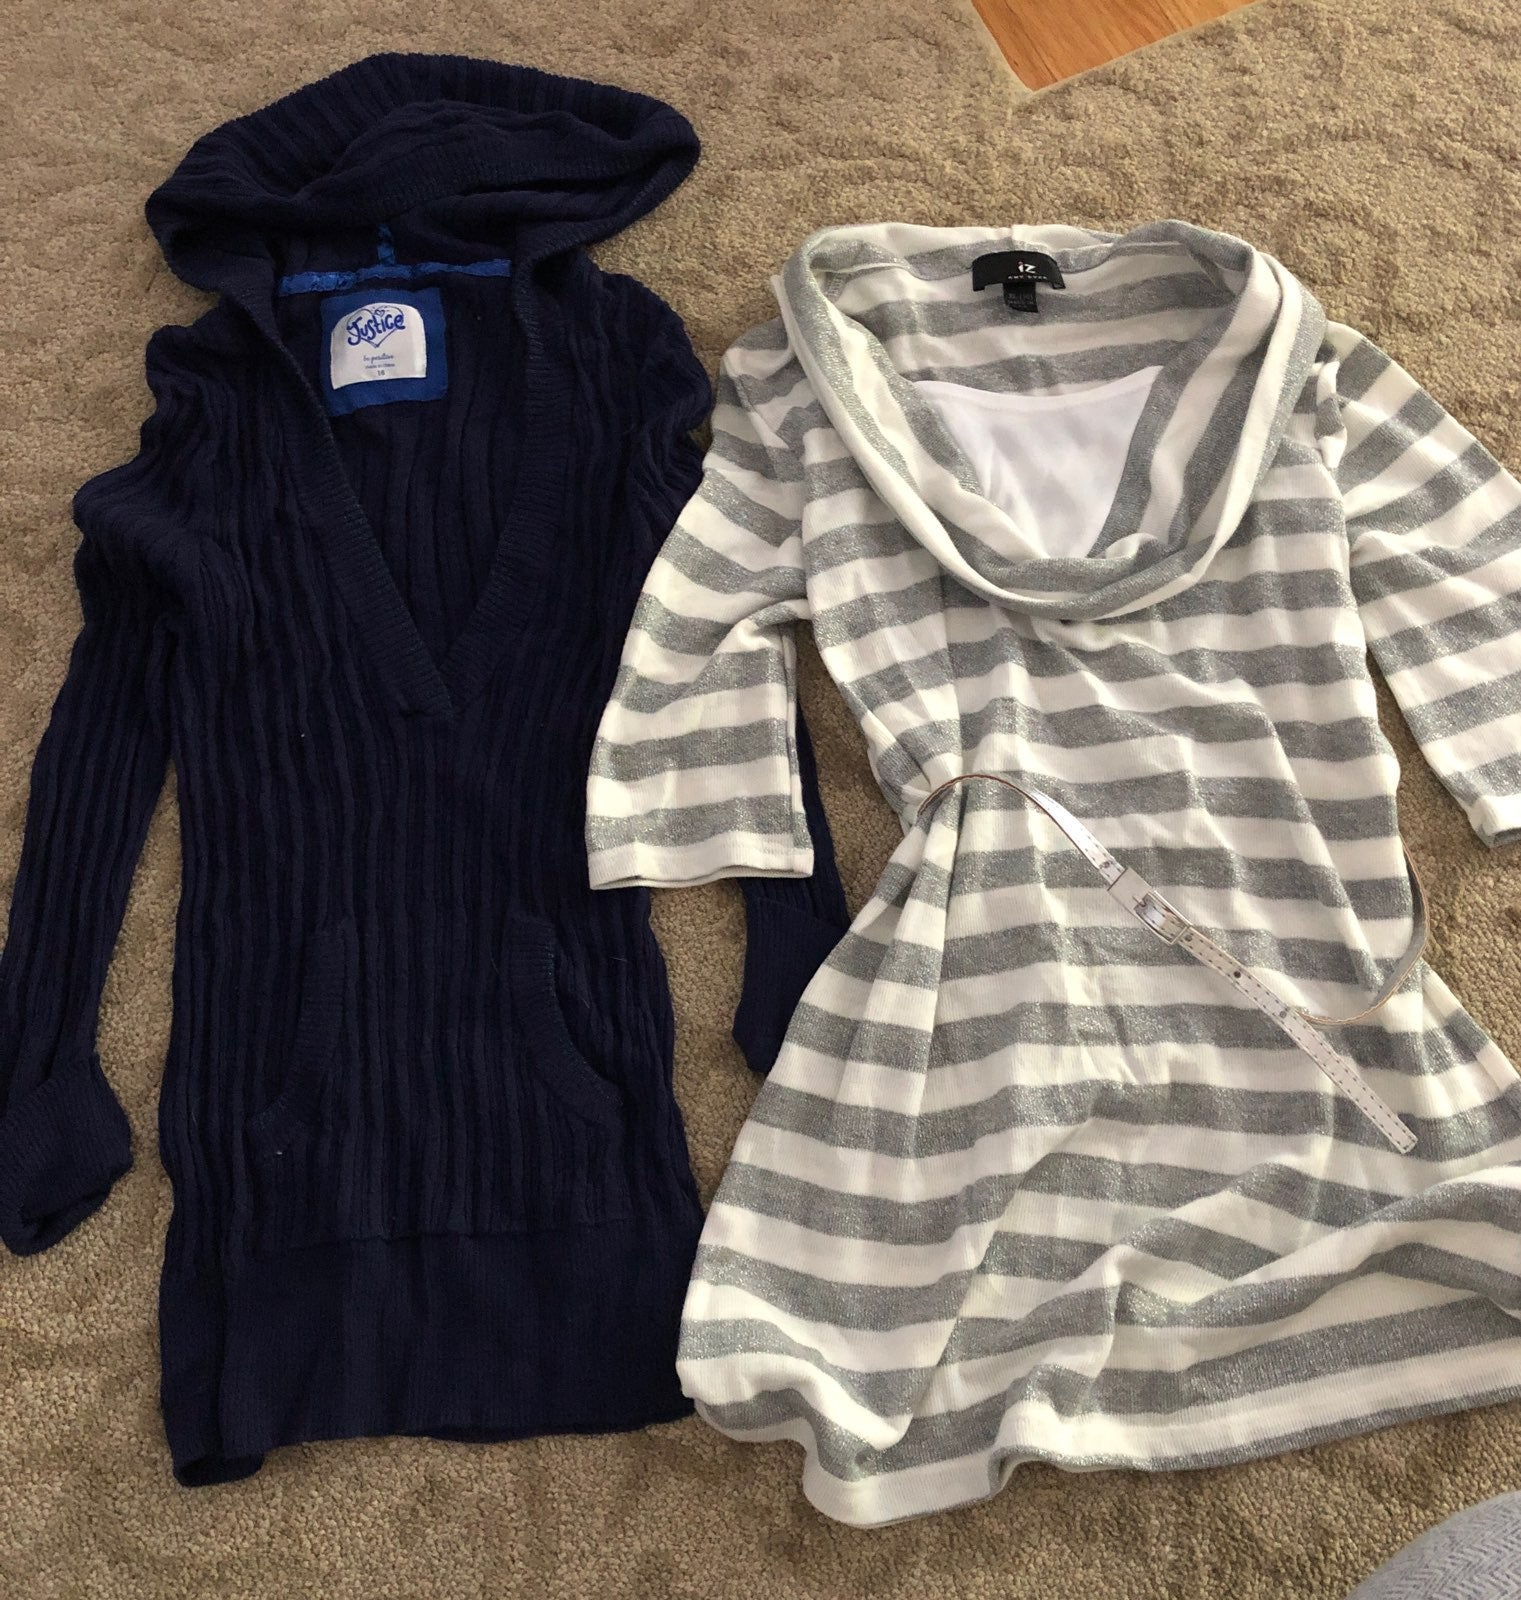 Girls size 16 tops